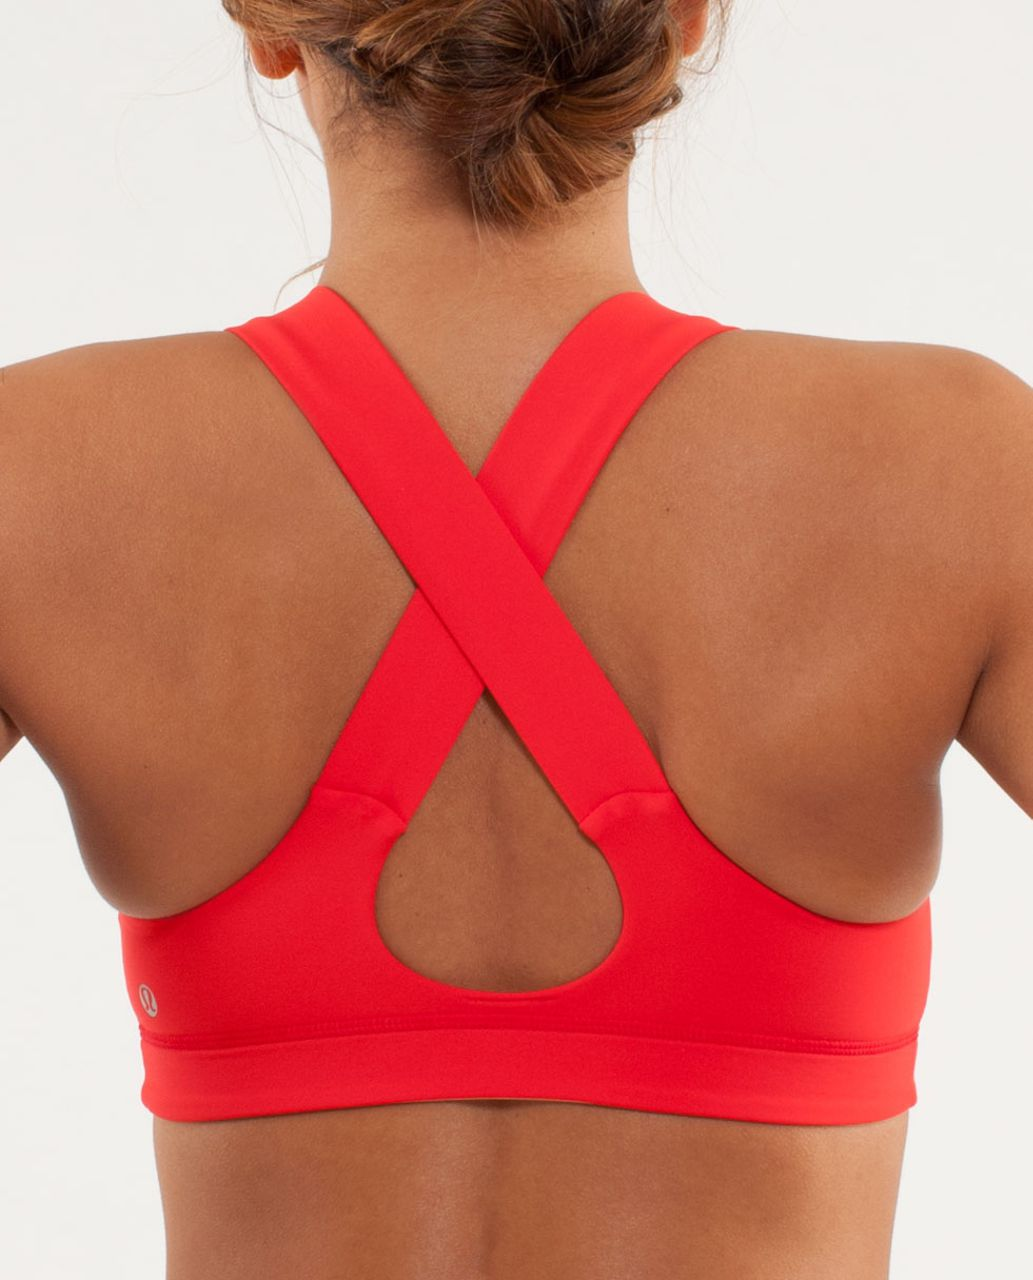 af7b449ae9 Lululemon All Sport Bra (First Release) - Love Red - lulu fanatics